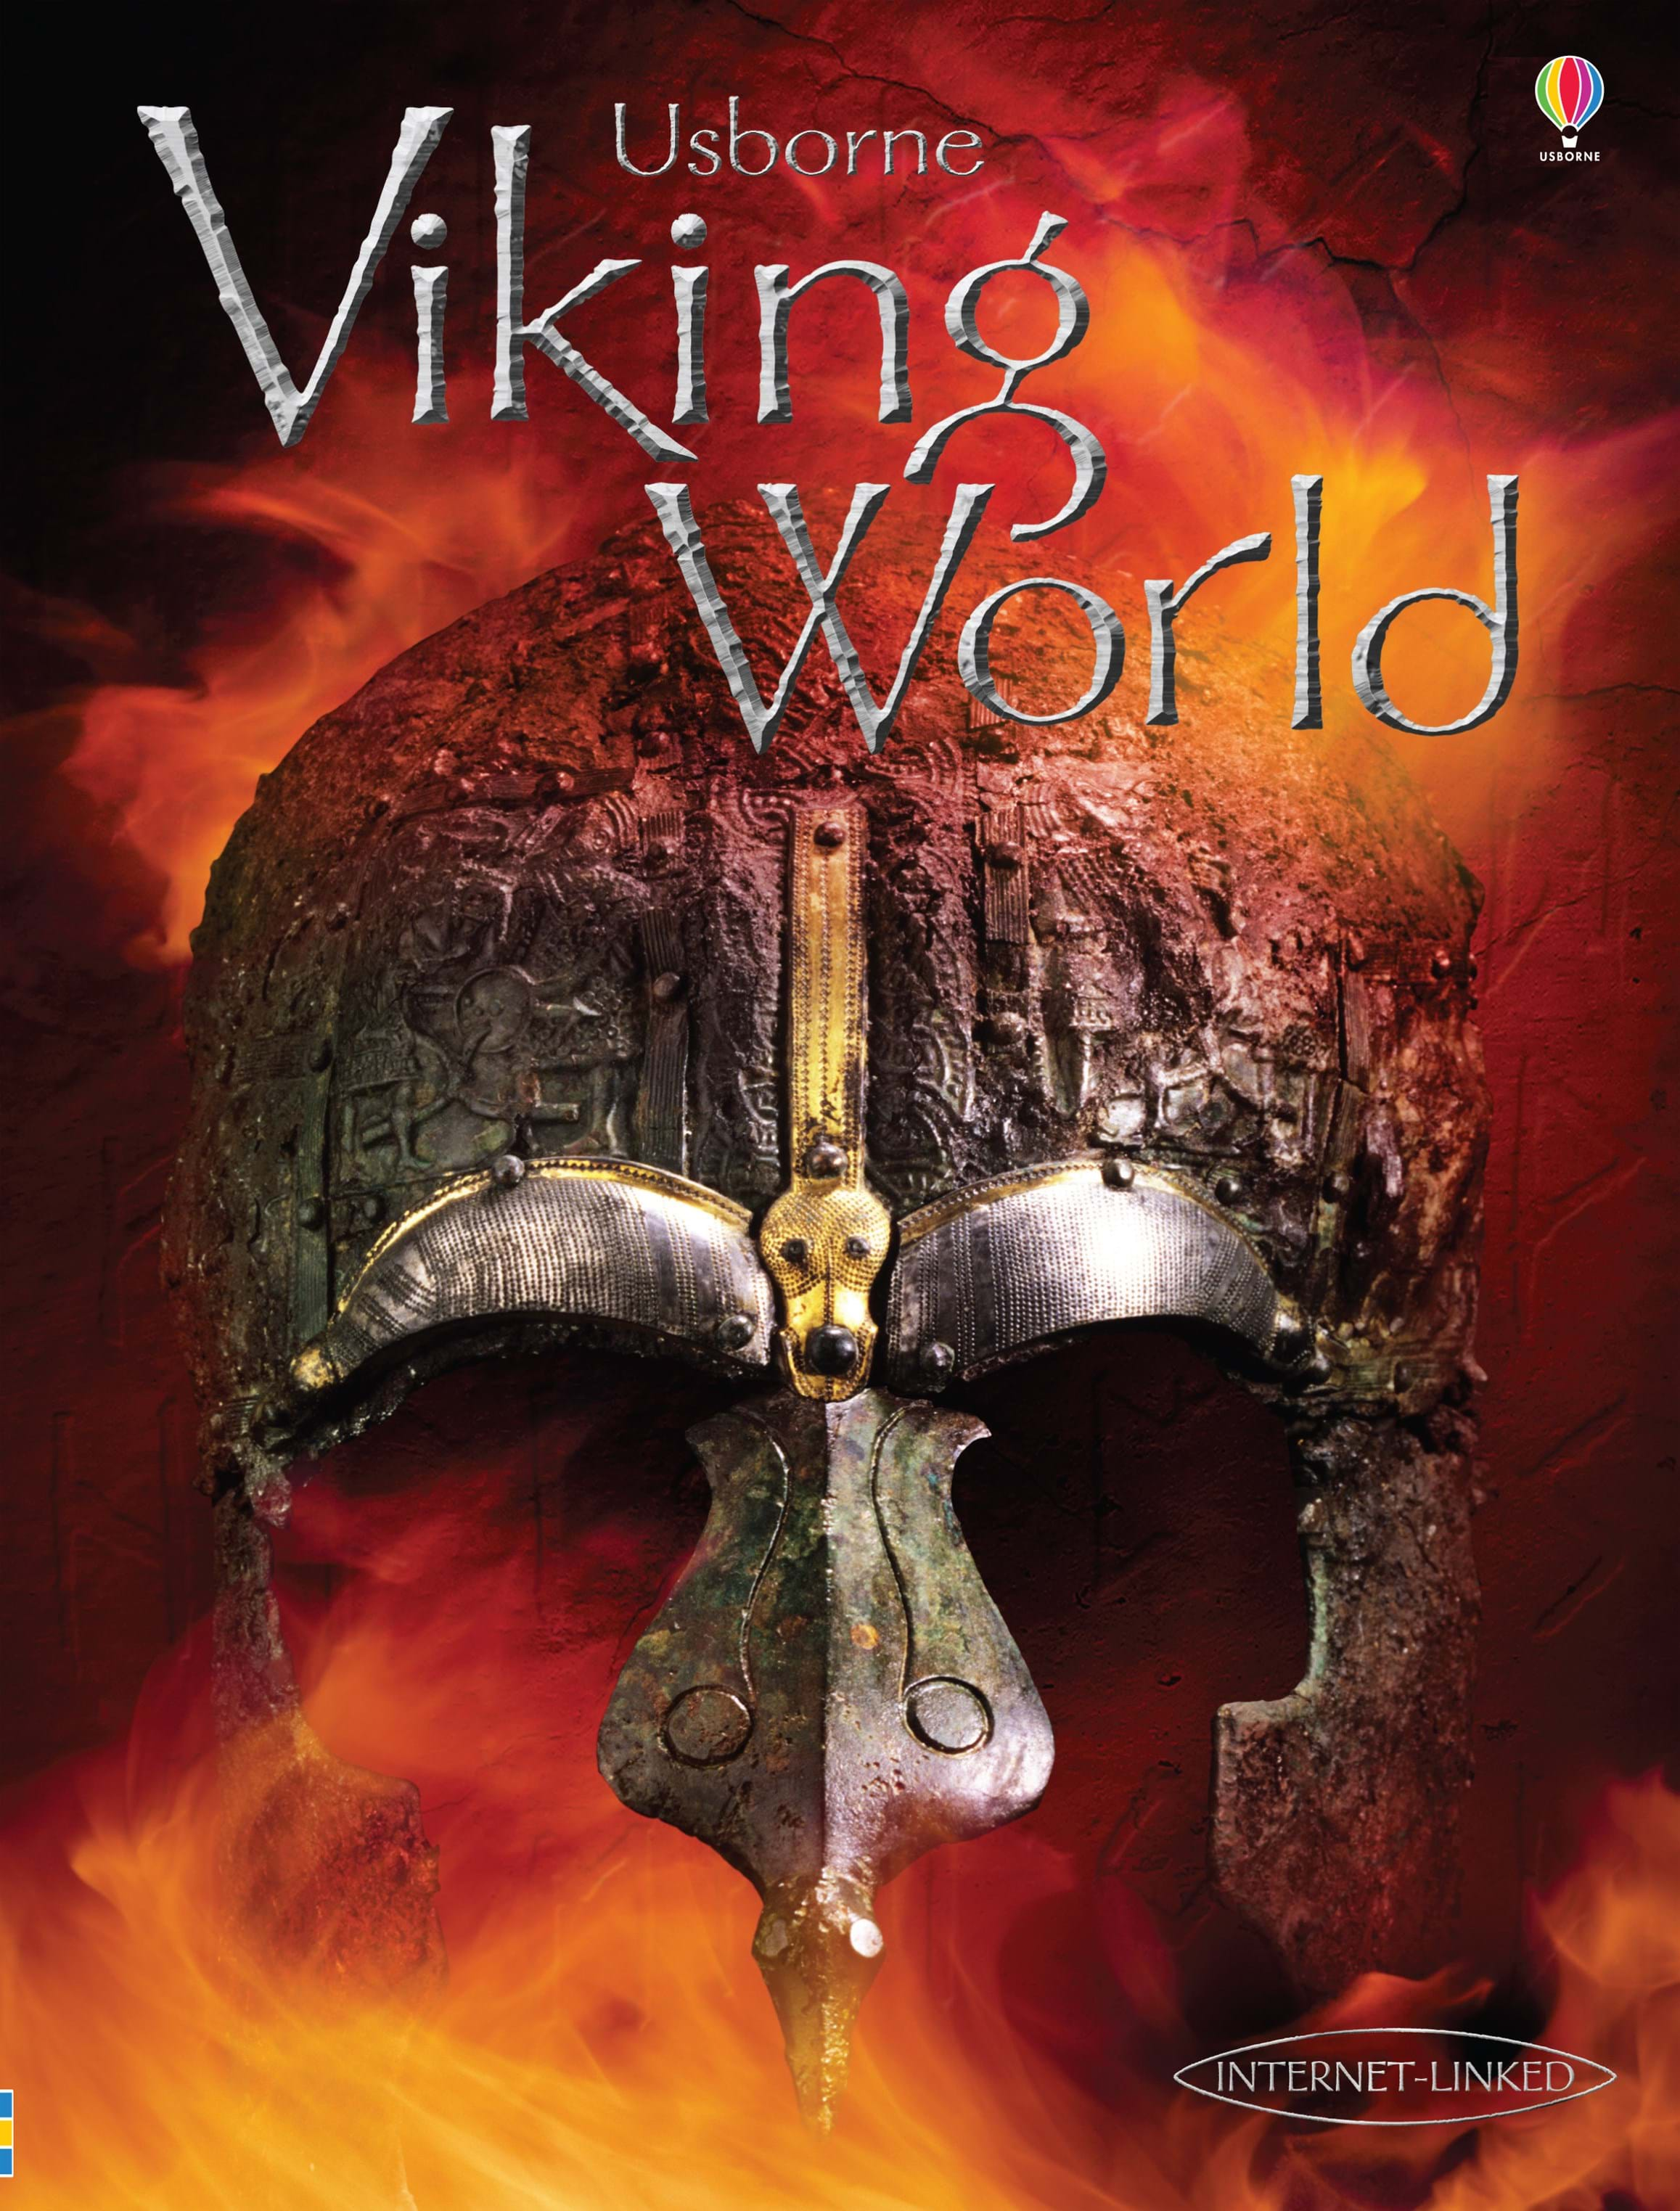 u201cviking world u201d at usborne children u2019s books